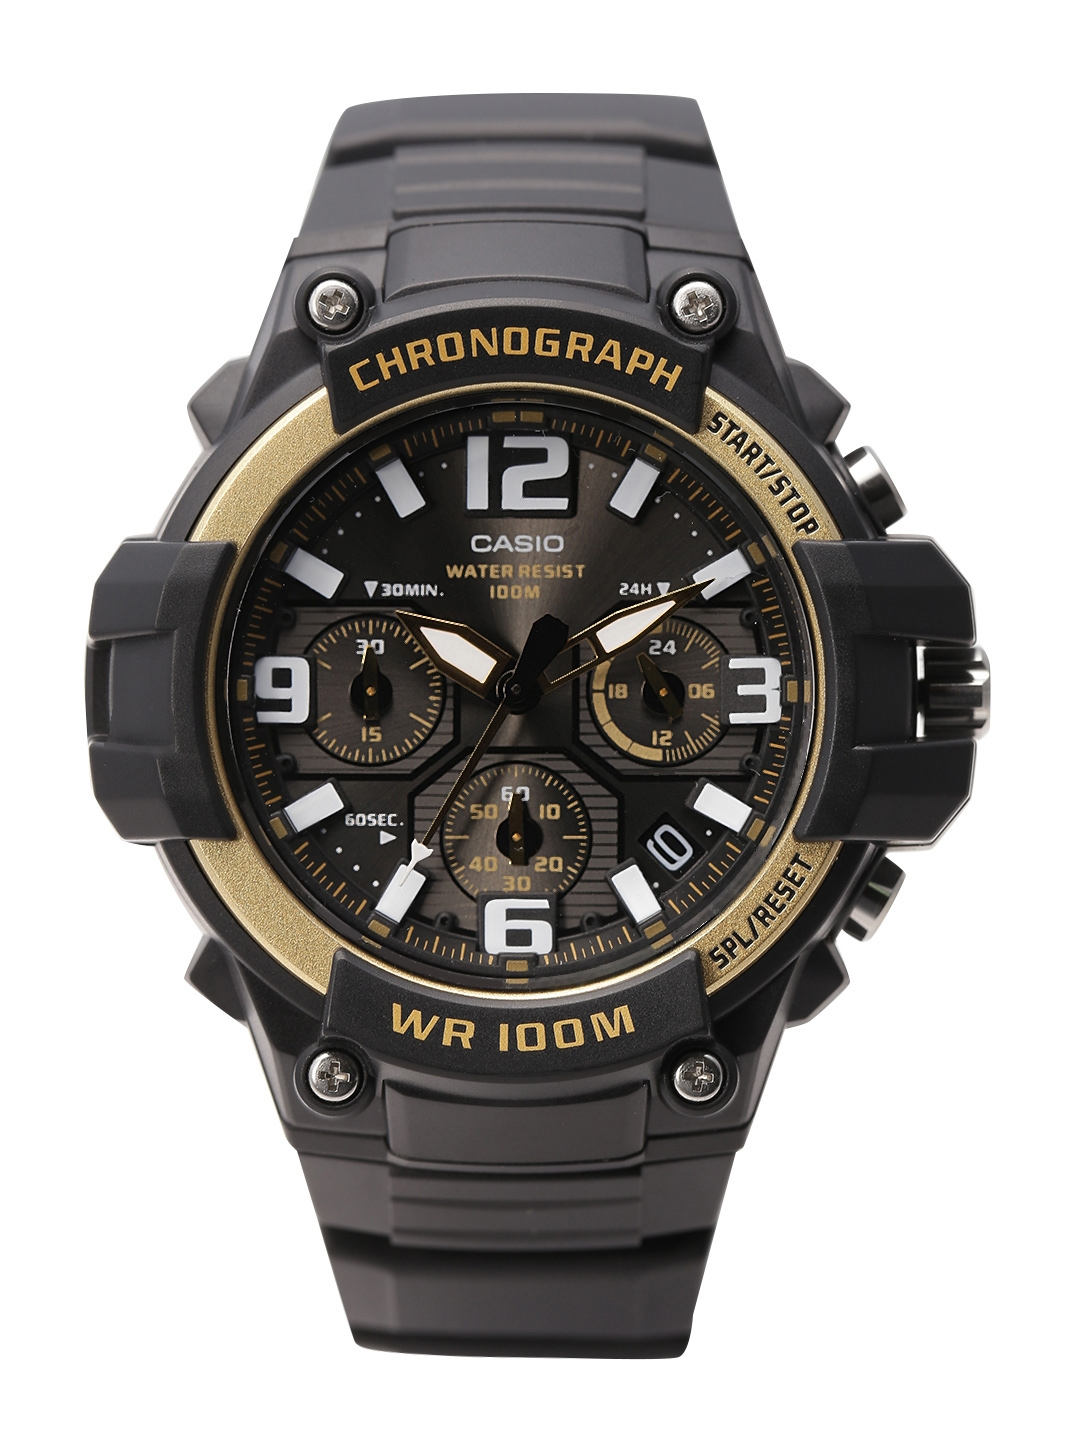 Casio Youth Analog Men Black Analogue watch AD215 MCW 100H 9A2VDF